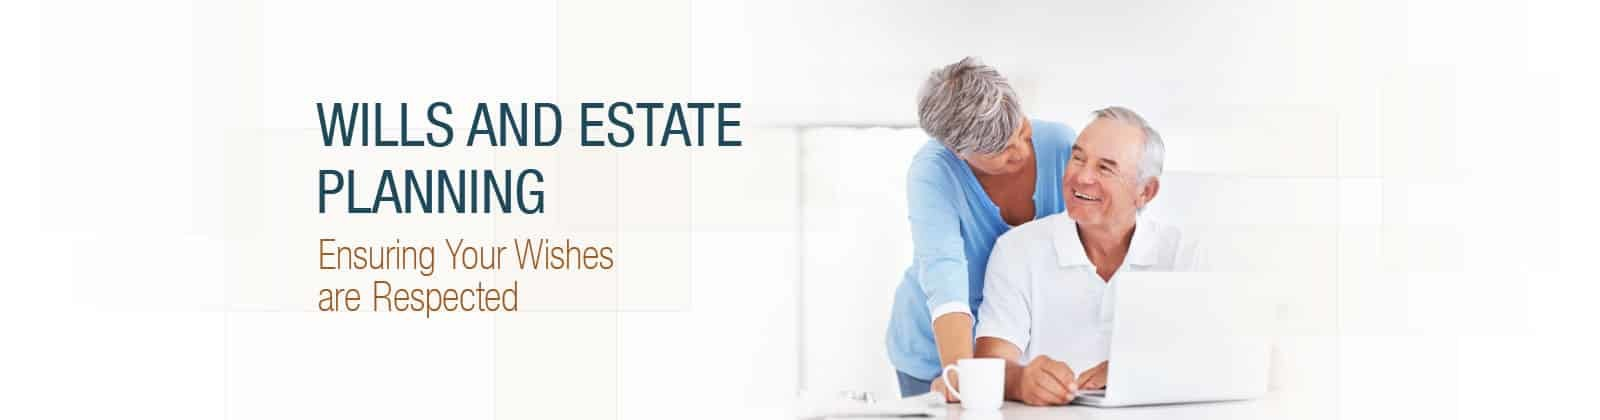 estate planning home